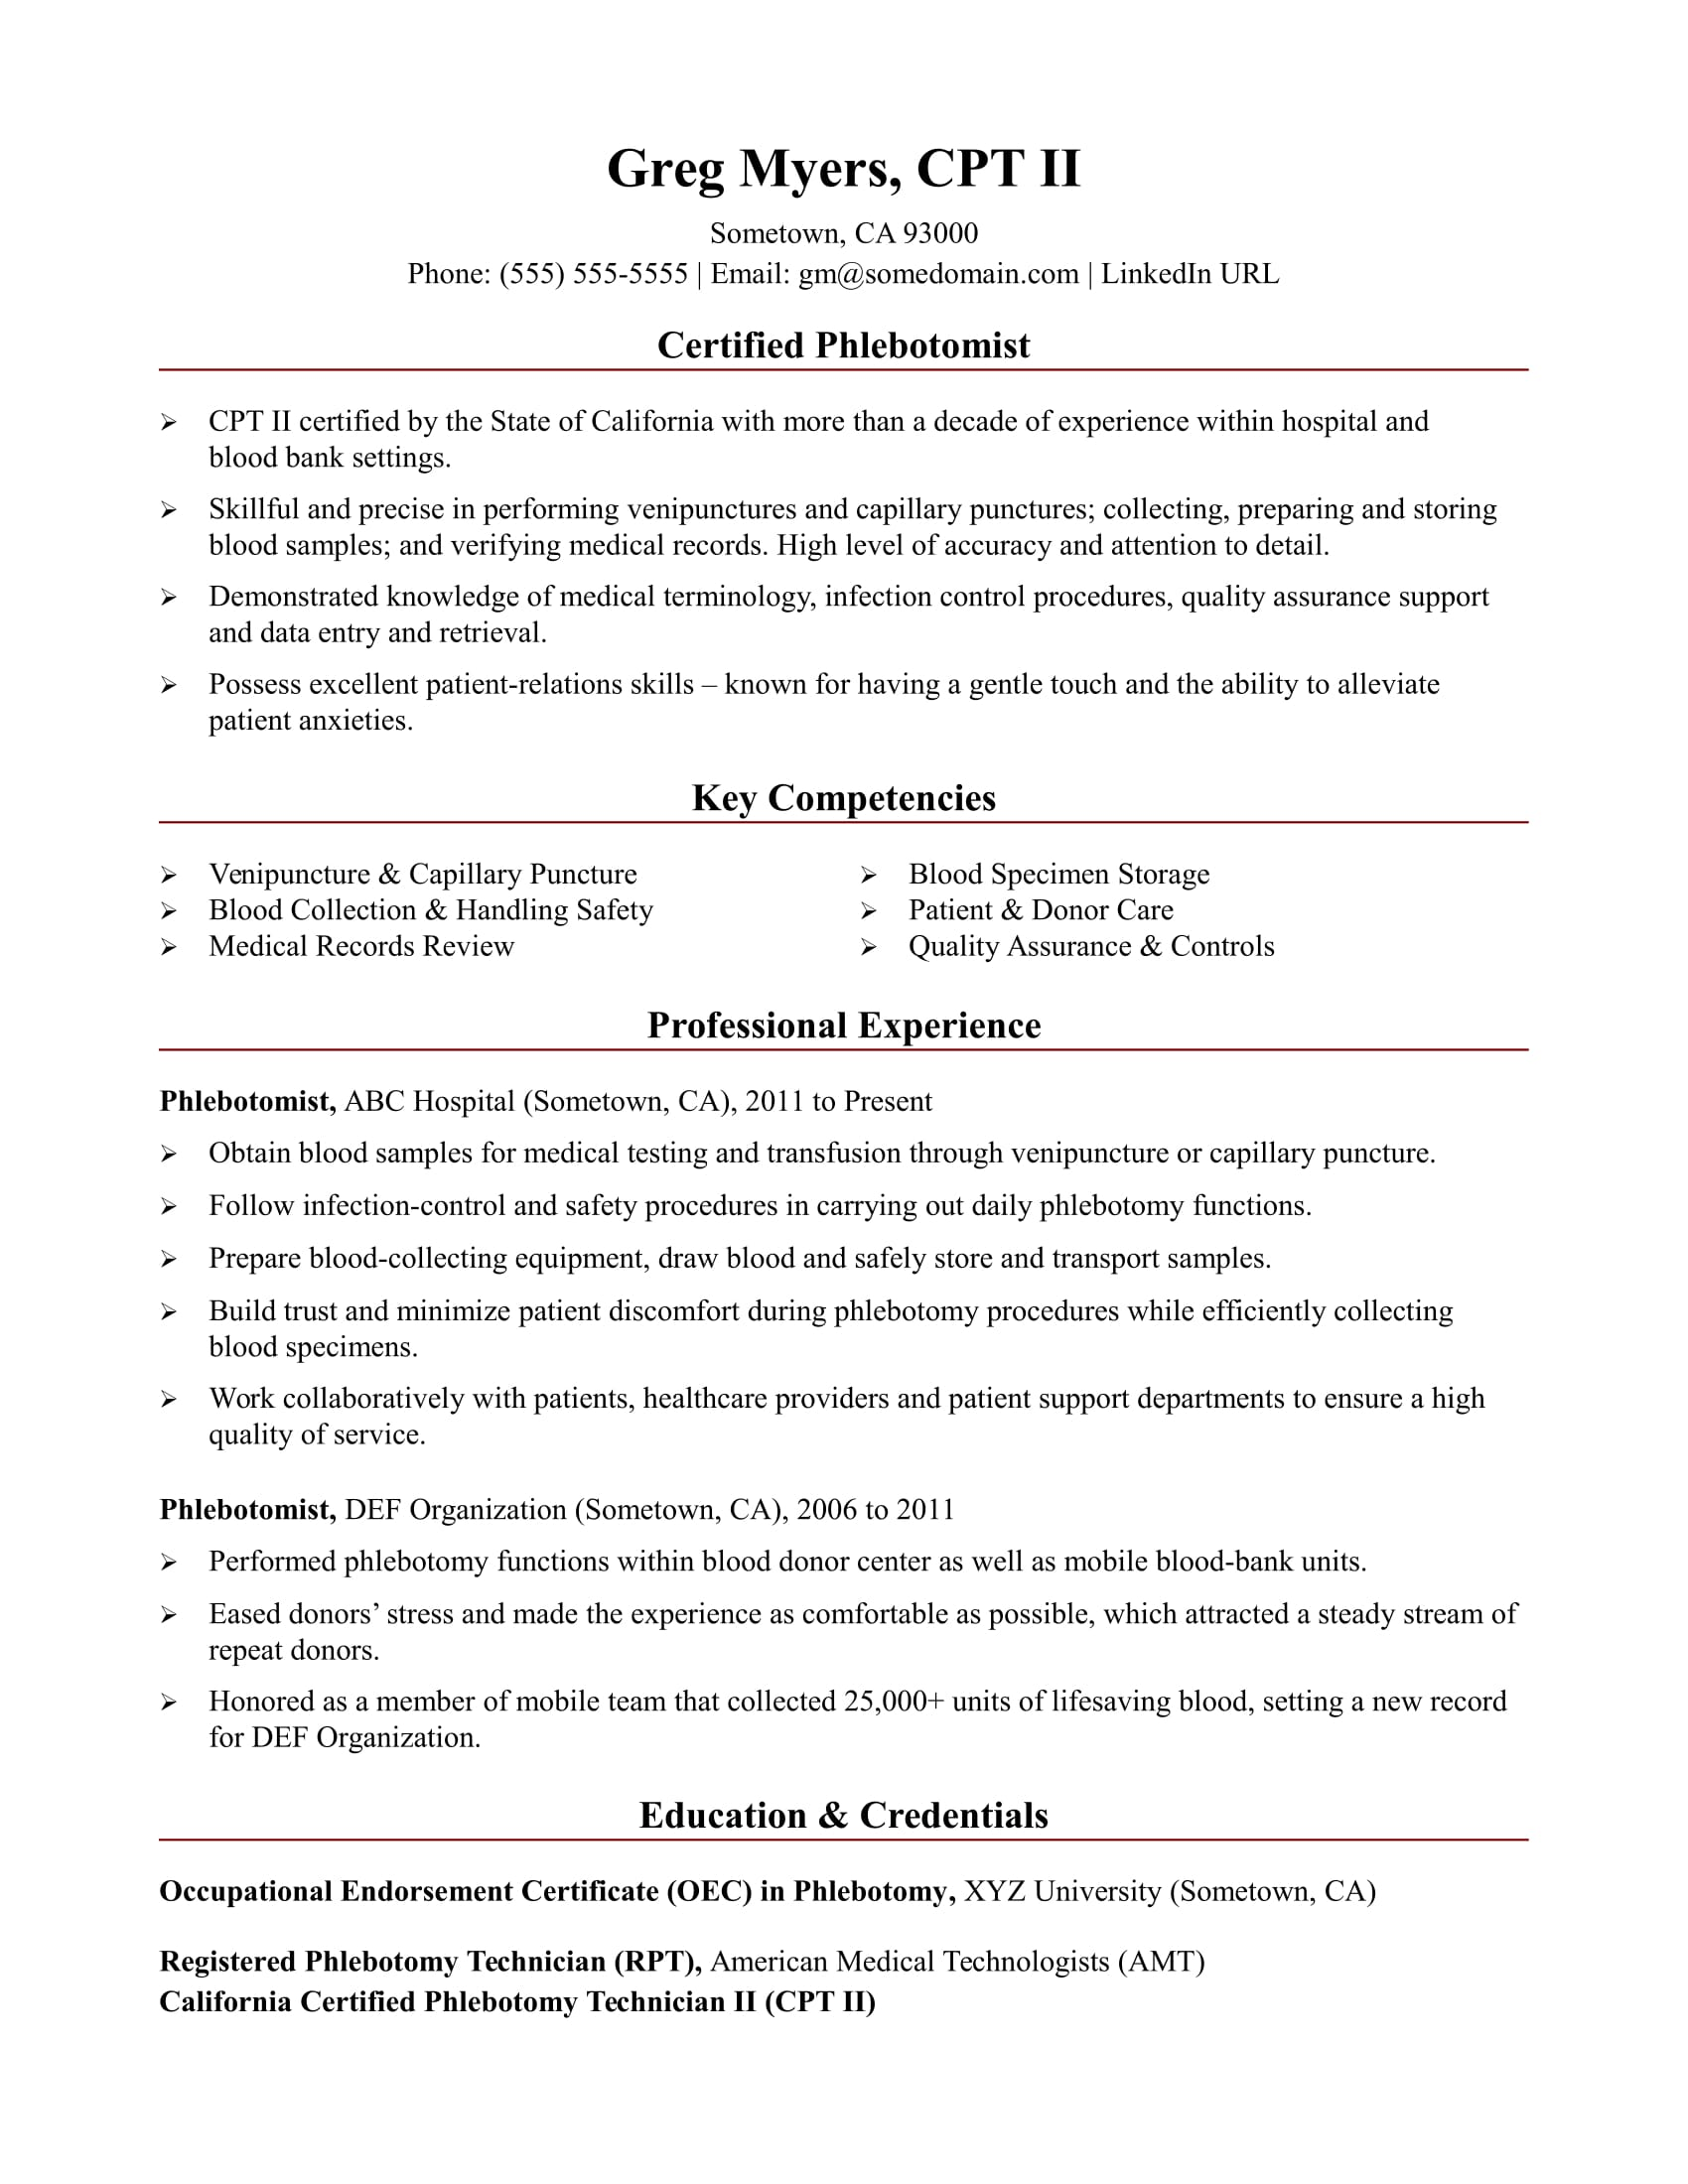 Phlebotomist Resume Sample Monster Com